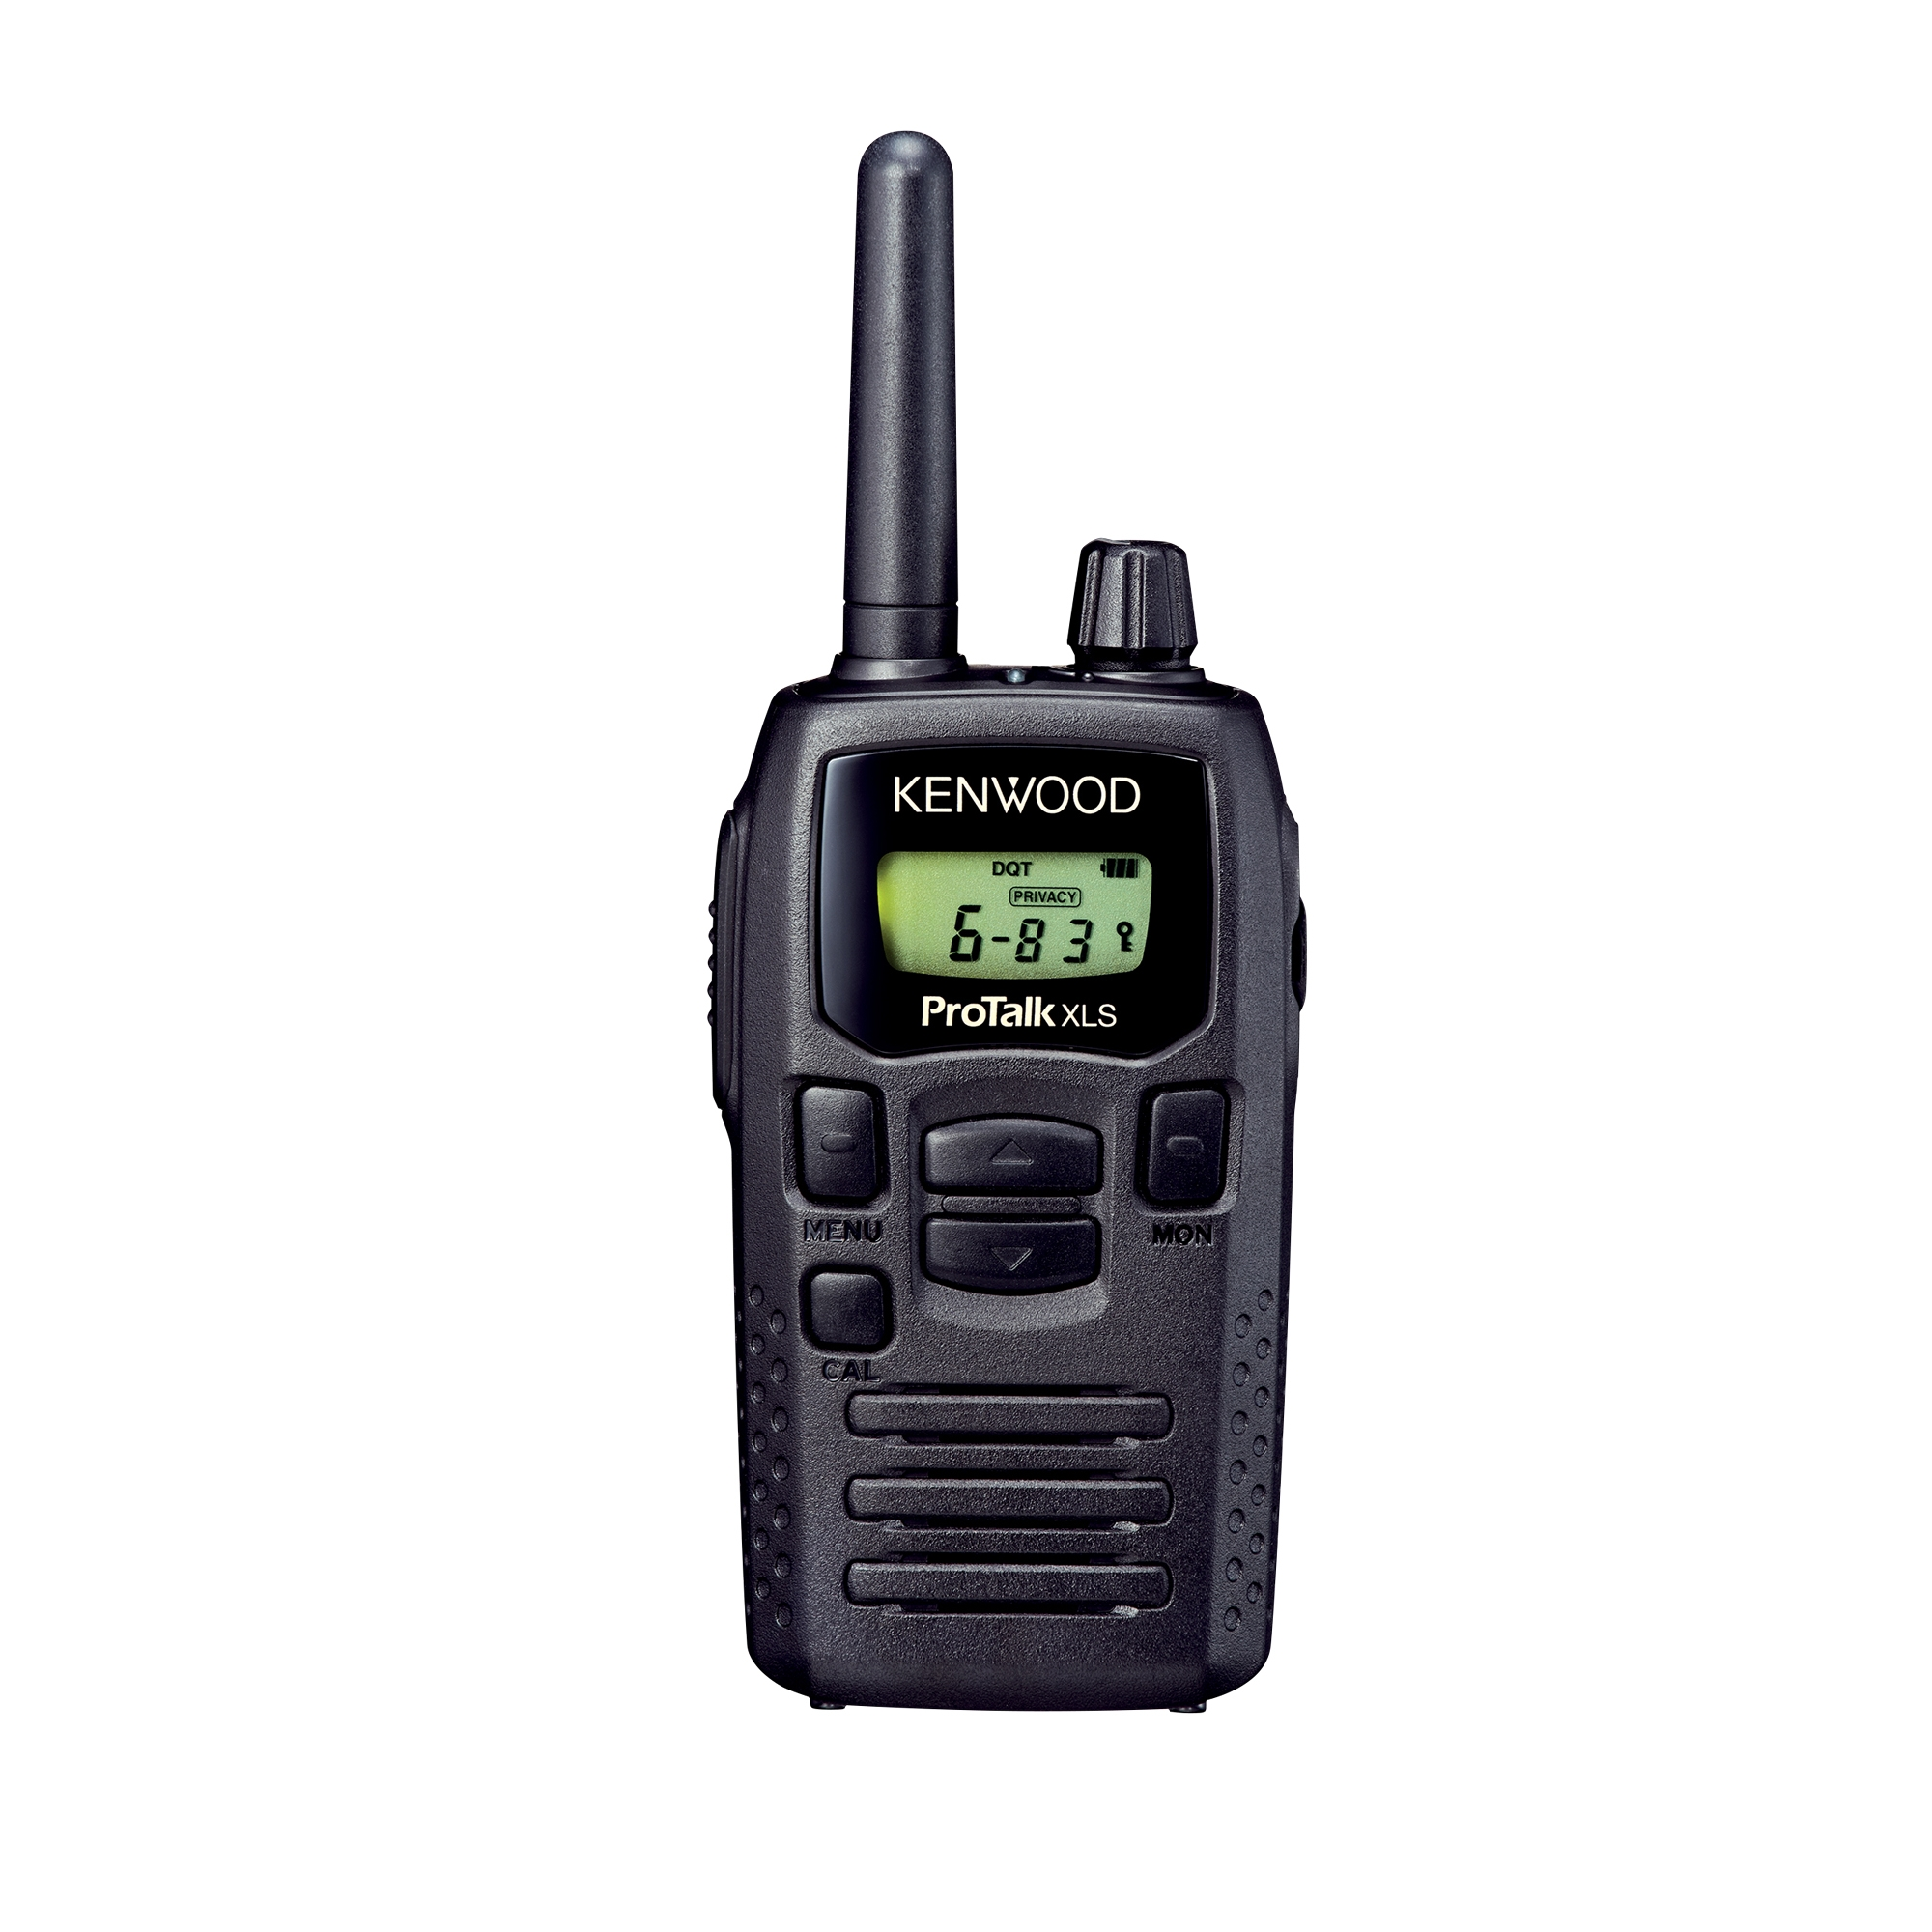 Portable UHF Two-Way Radios & Accessories